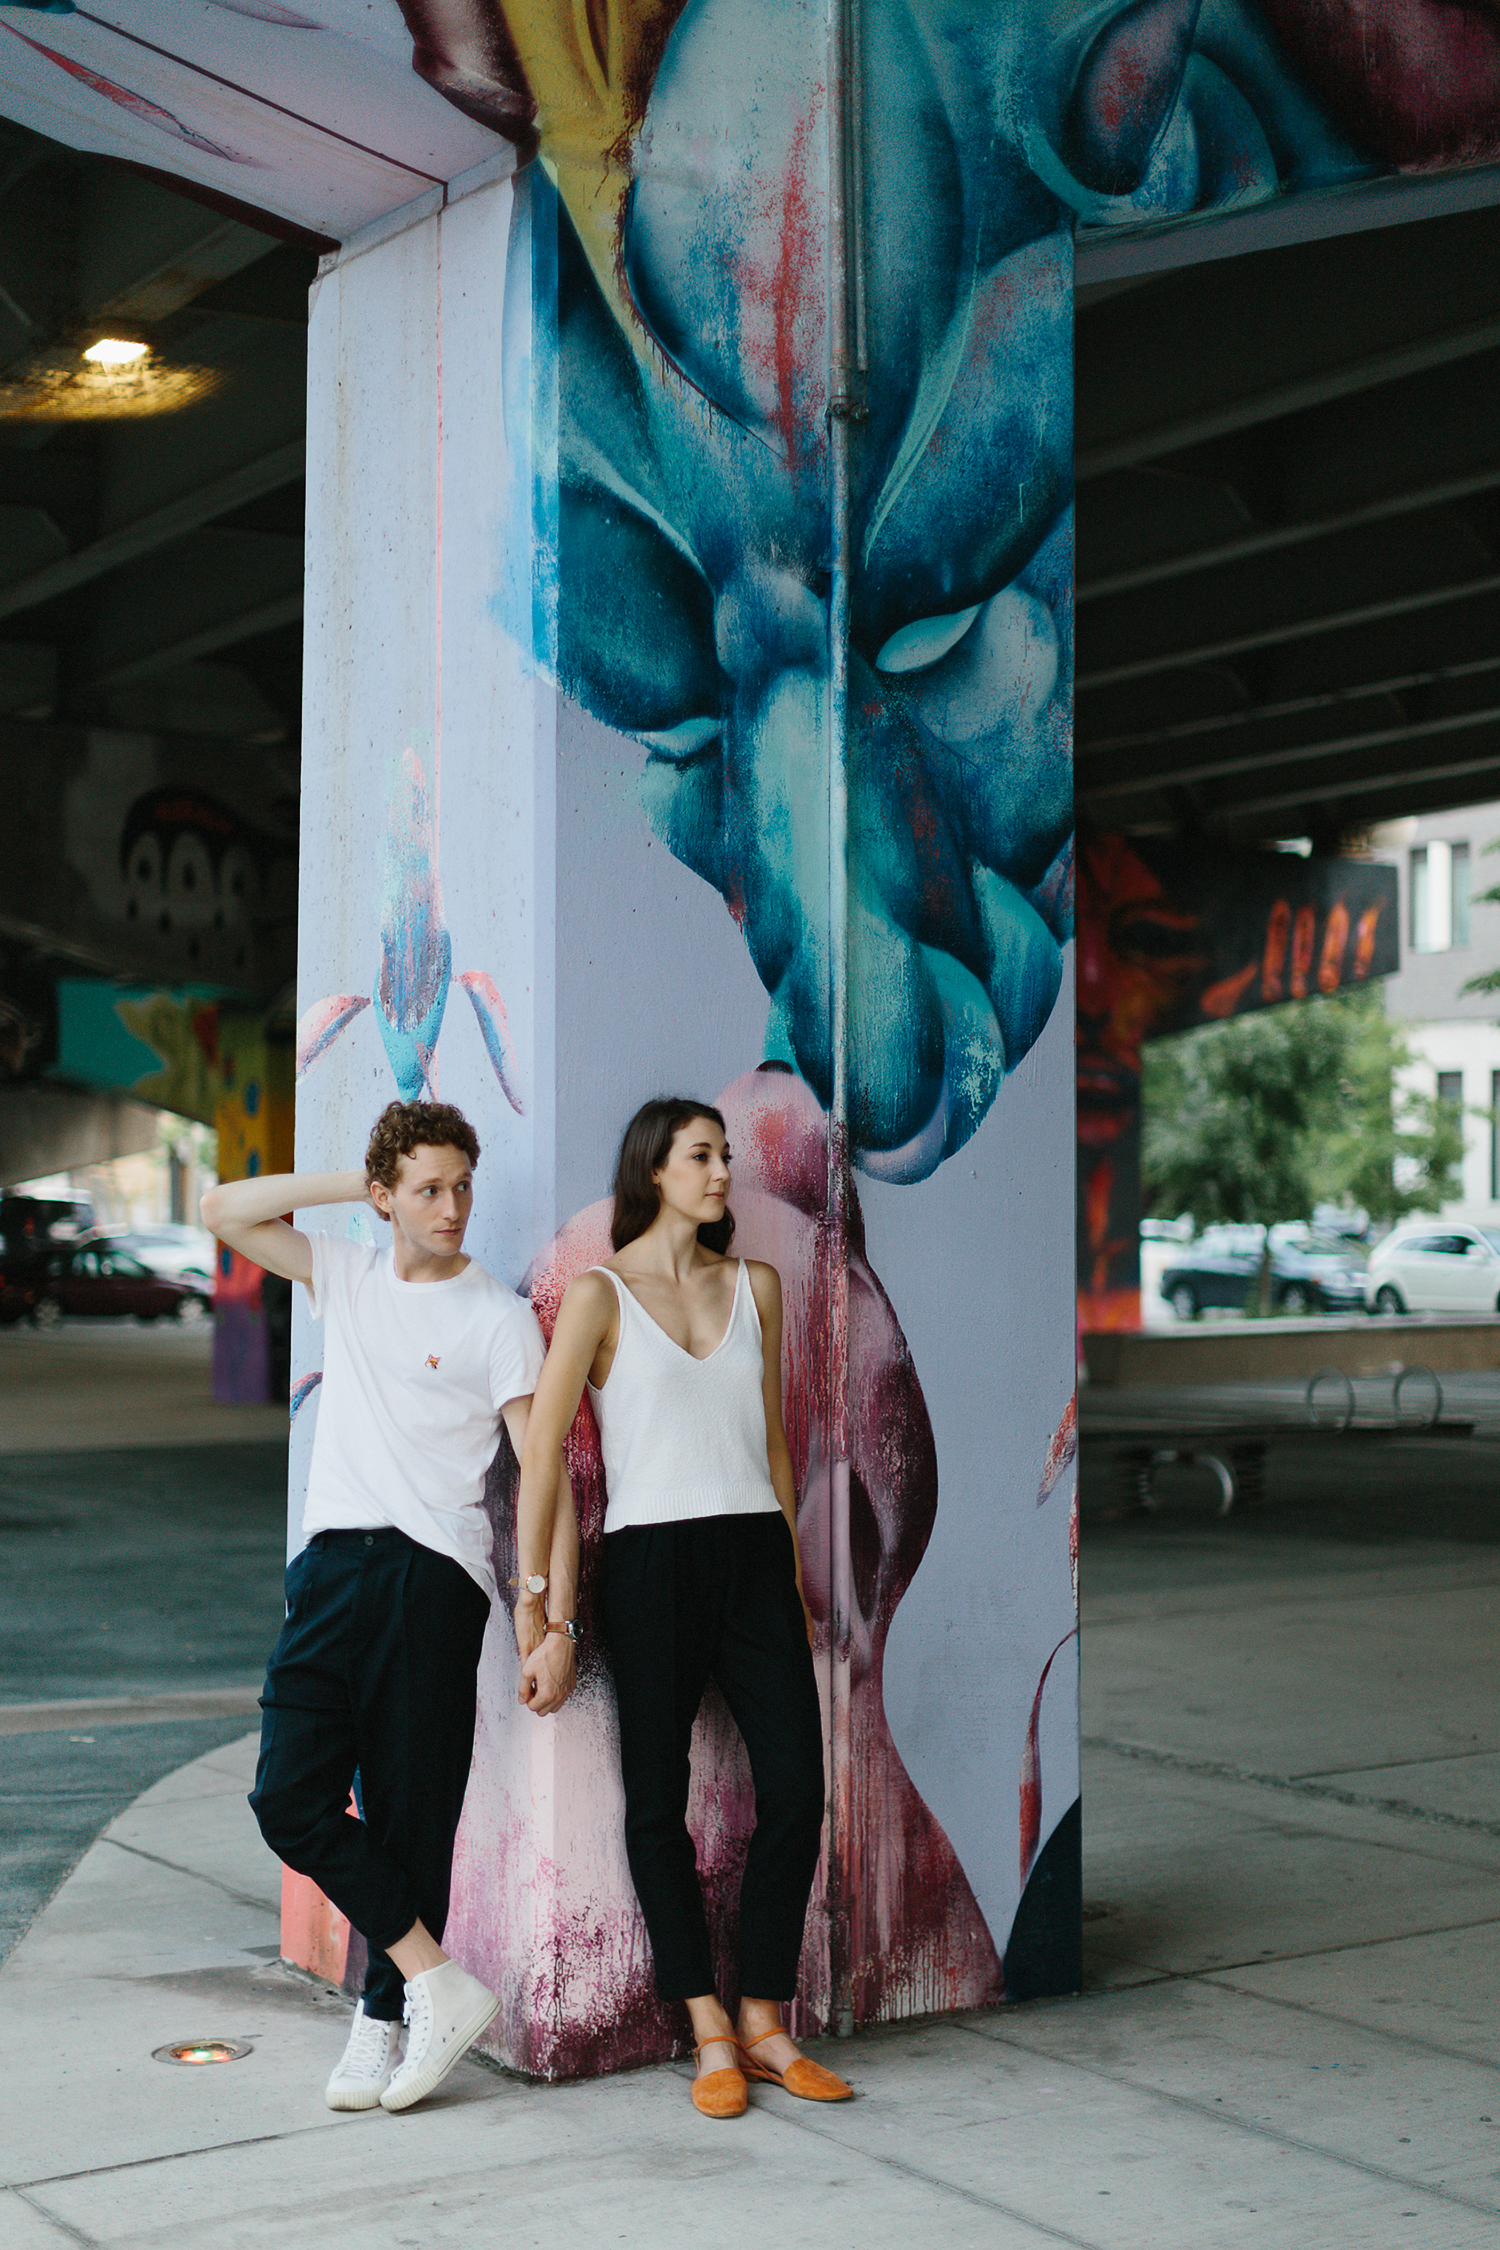 toronto-engagement-session-east-end-toronto-engagement-session-locations-underpass-park-engagement-alternative-hipster-wedding-photography-artistic-intimate-editorial-engagement-photos-weird-different-murals.jpg